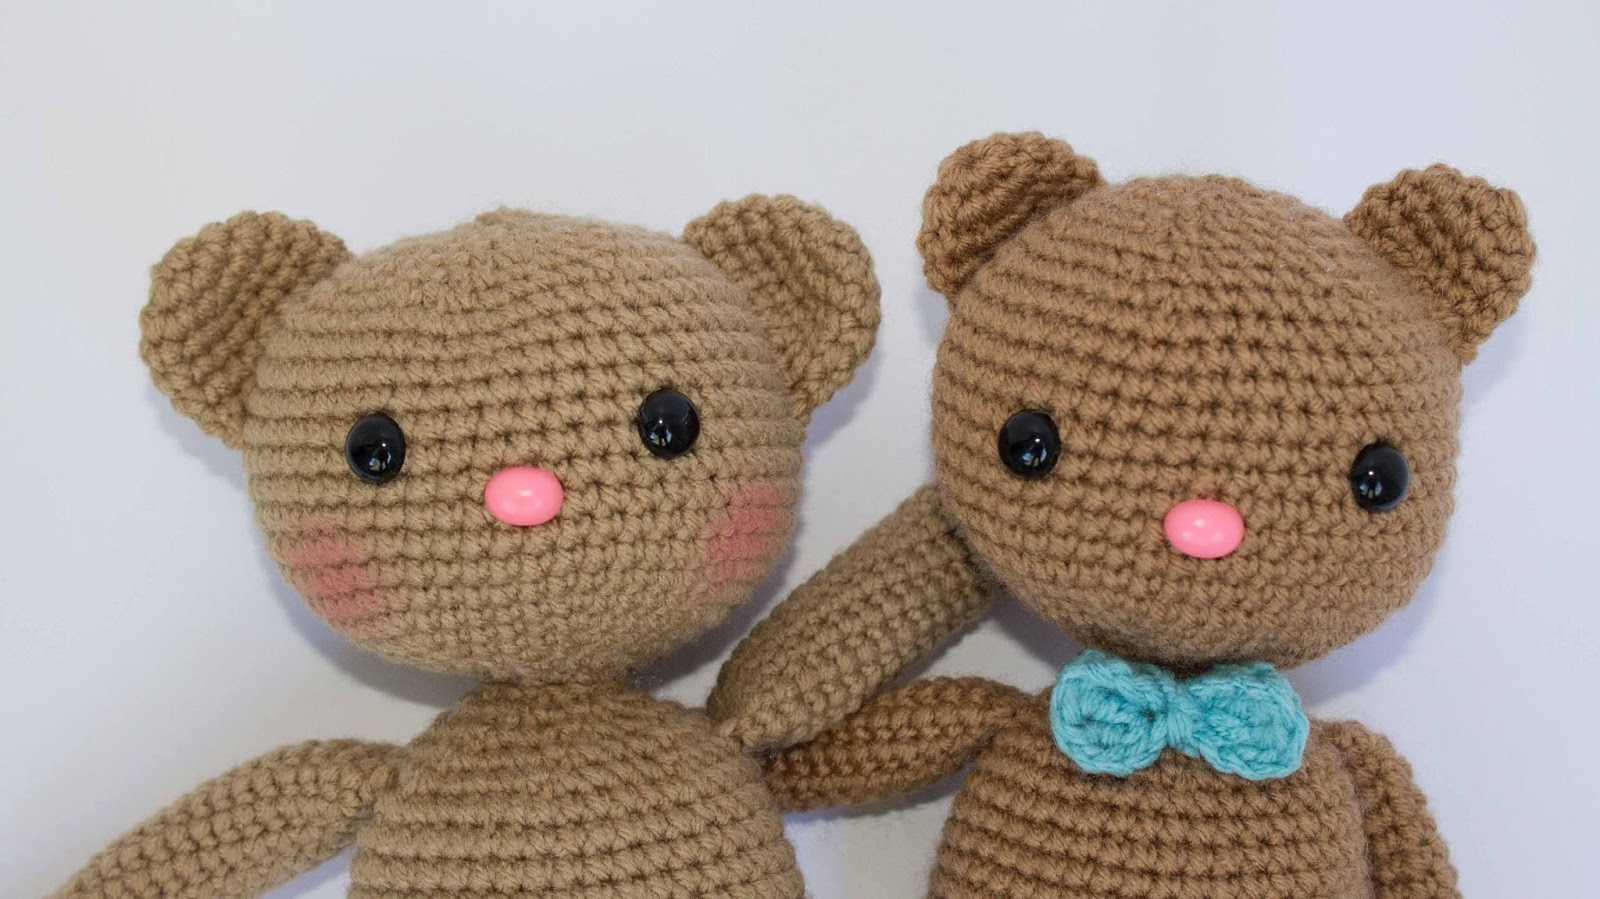 Crochet Amigurumi Bear Pattern Thefriendlyredfoxcom